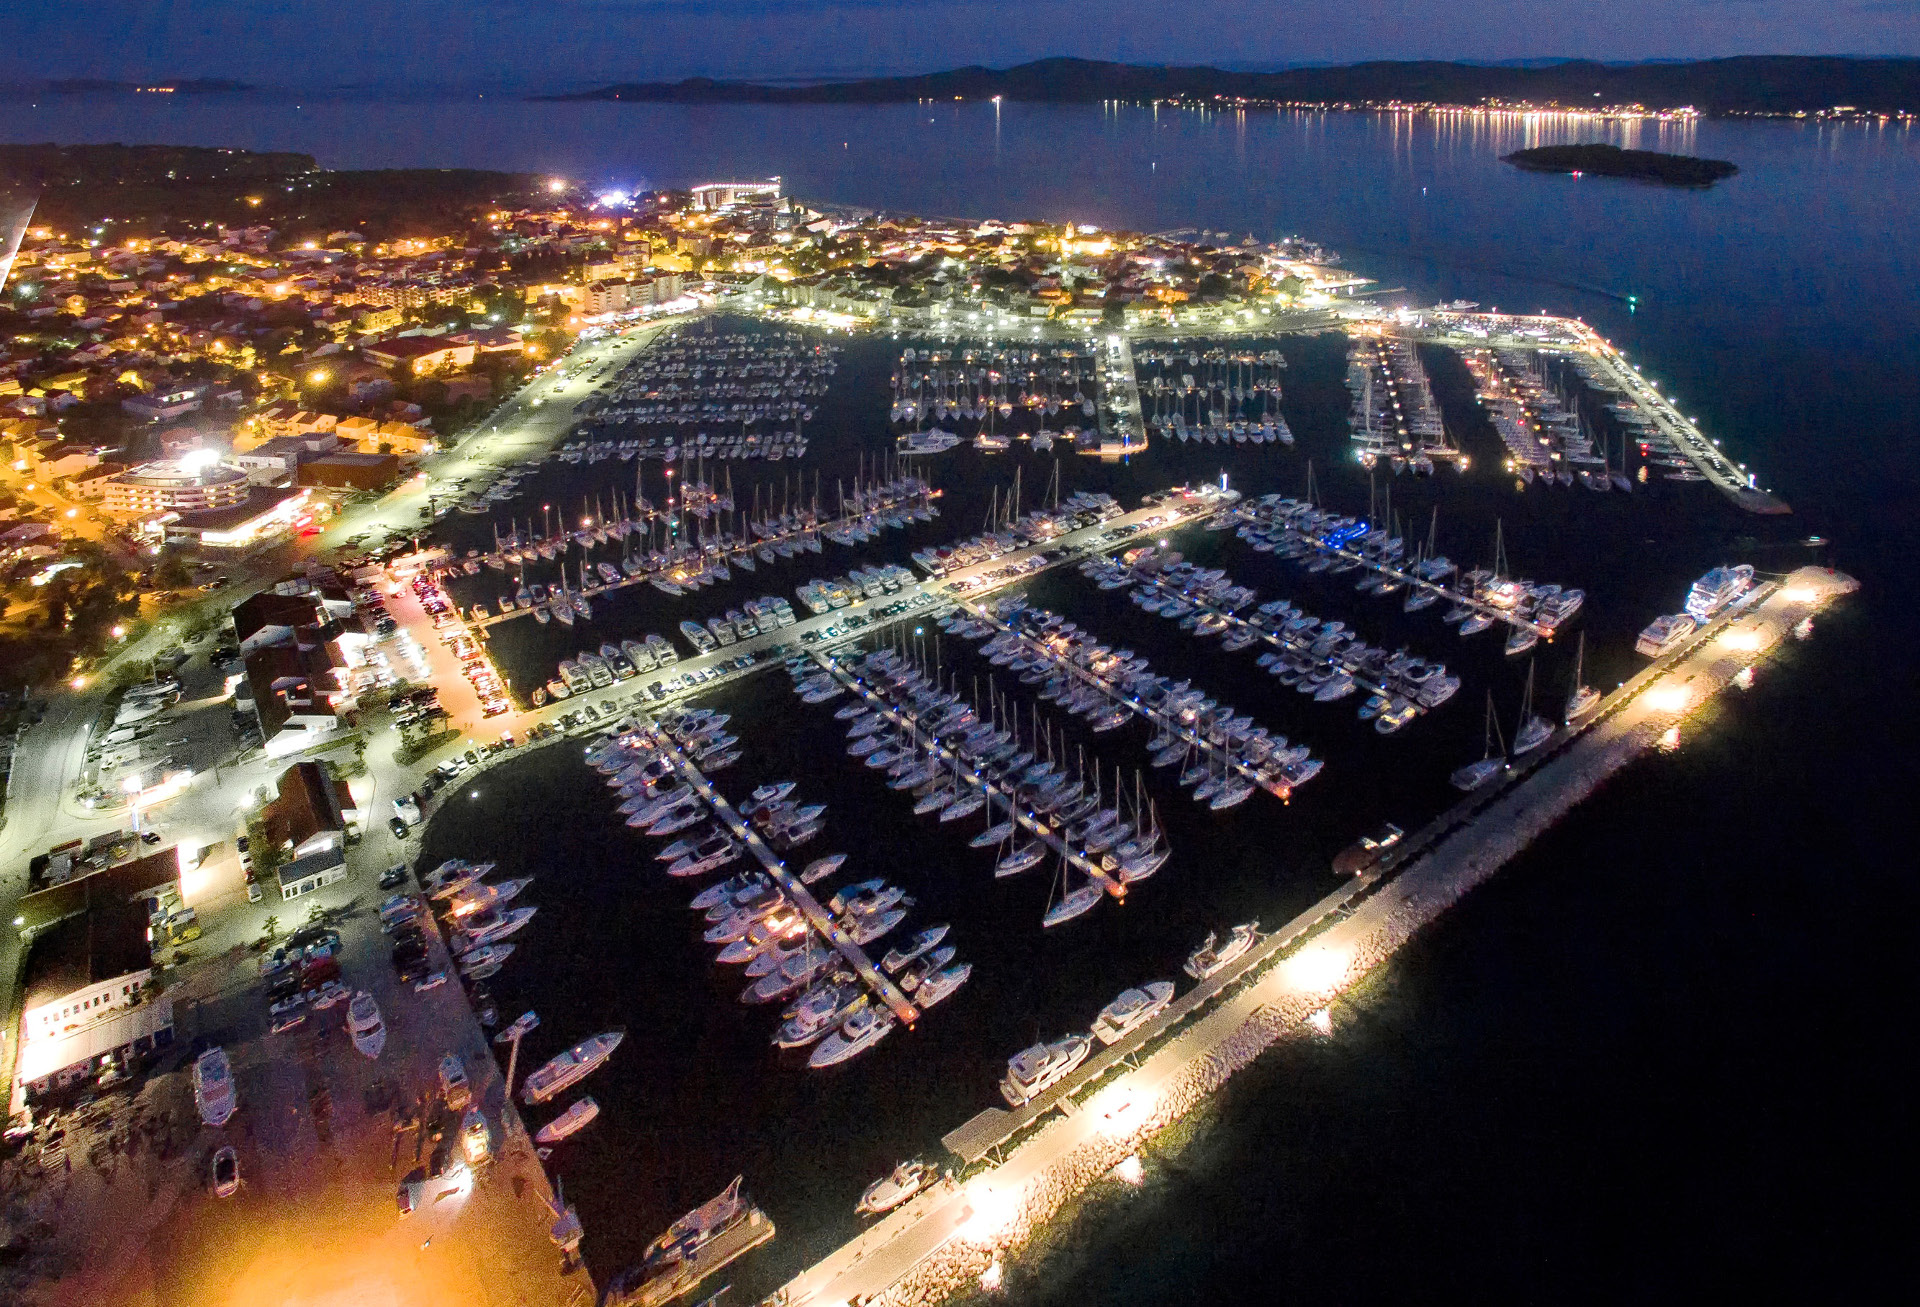 Biograd at night